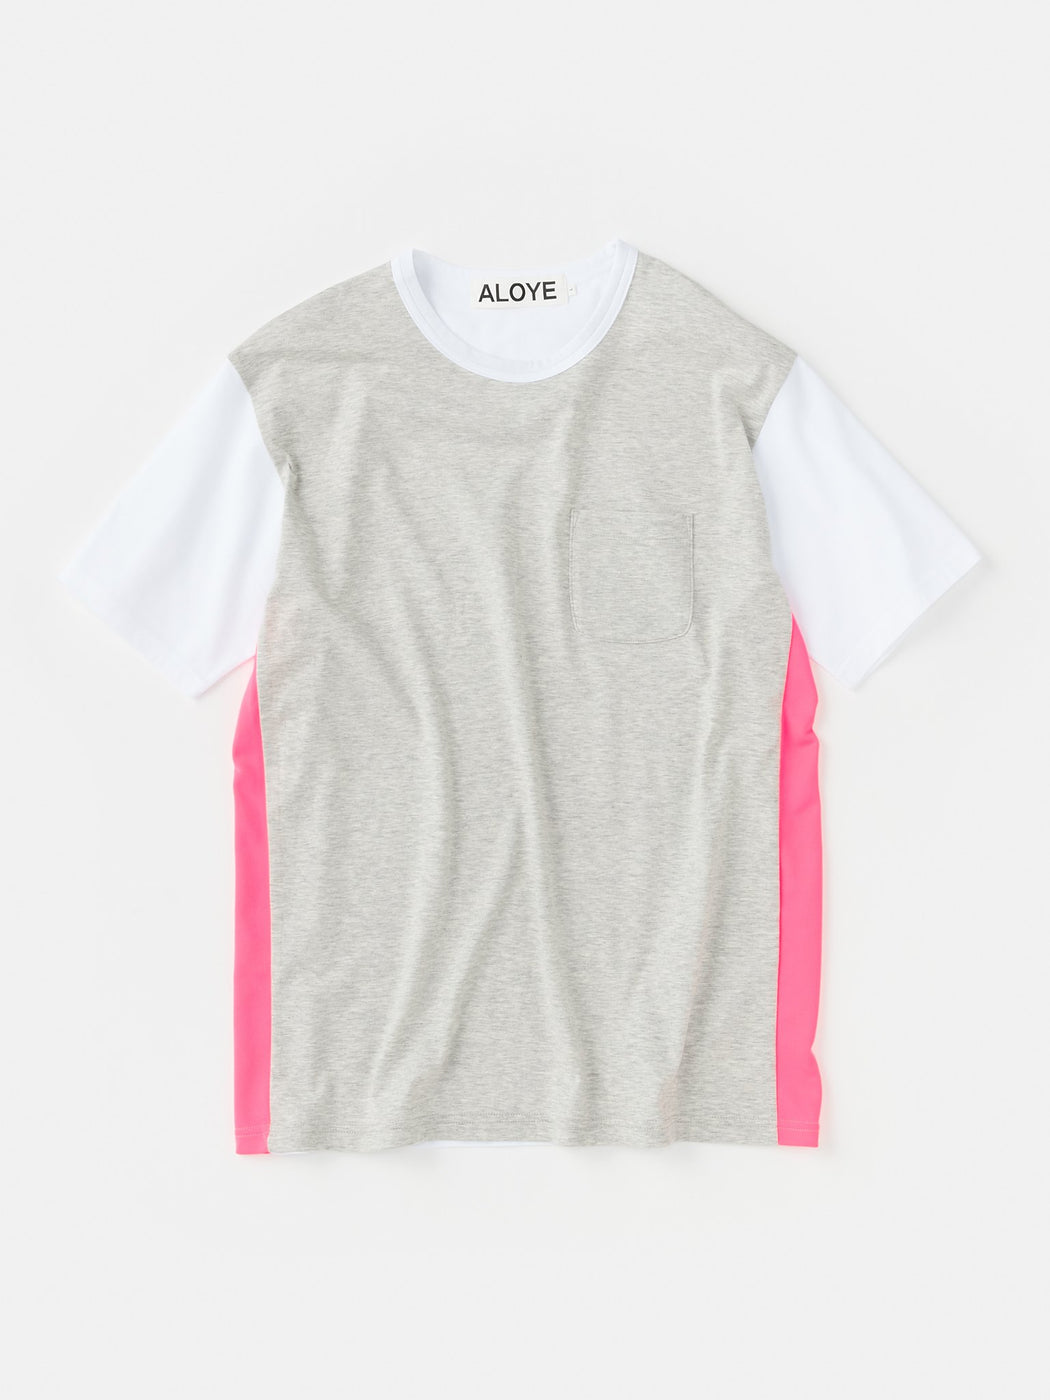 ALOYE Shirt Fabrics Short Sleeve T-shirt Heather Gray-Pink